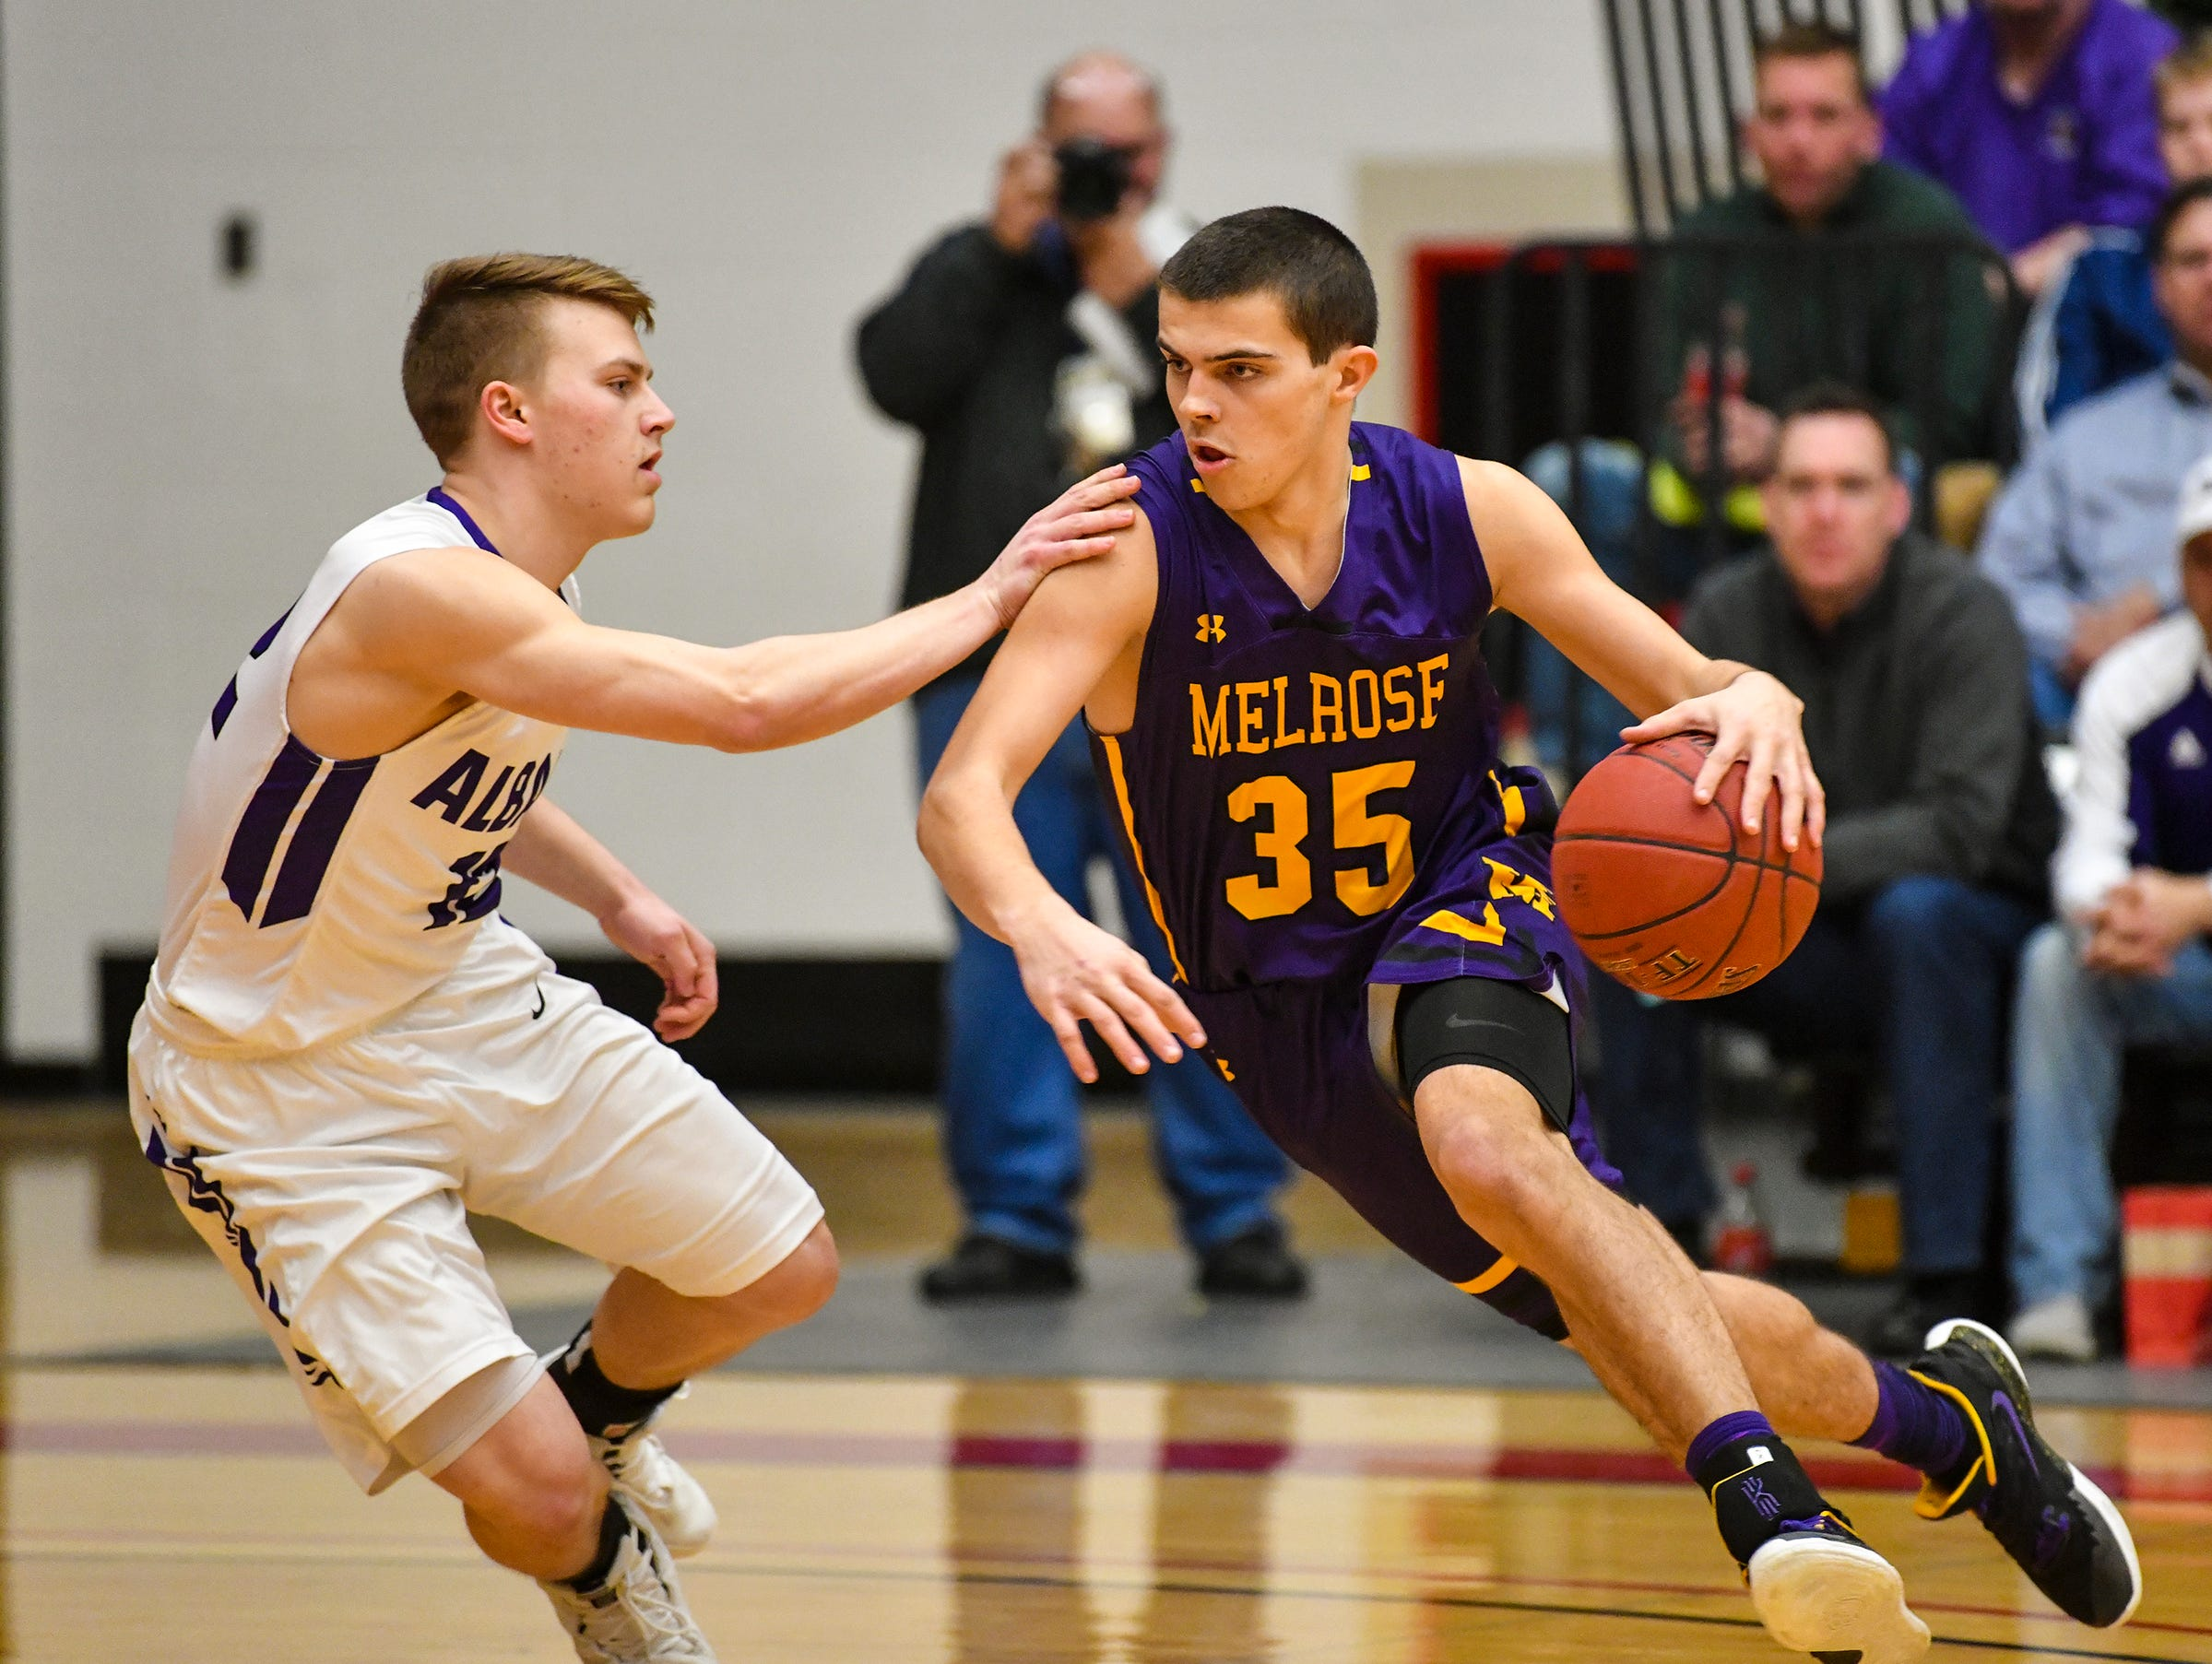 Preston Keaveny of Melrose drives to the hoop during the first half of the Friday, March 15, Section 6-2A championship game at Halenbeck Hall in St. Cloud.